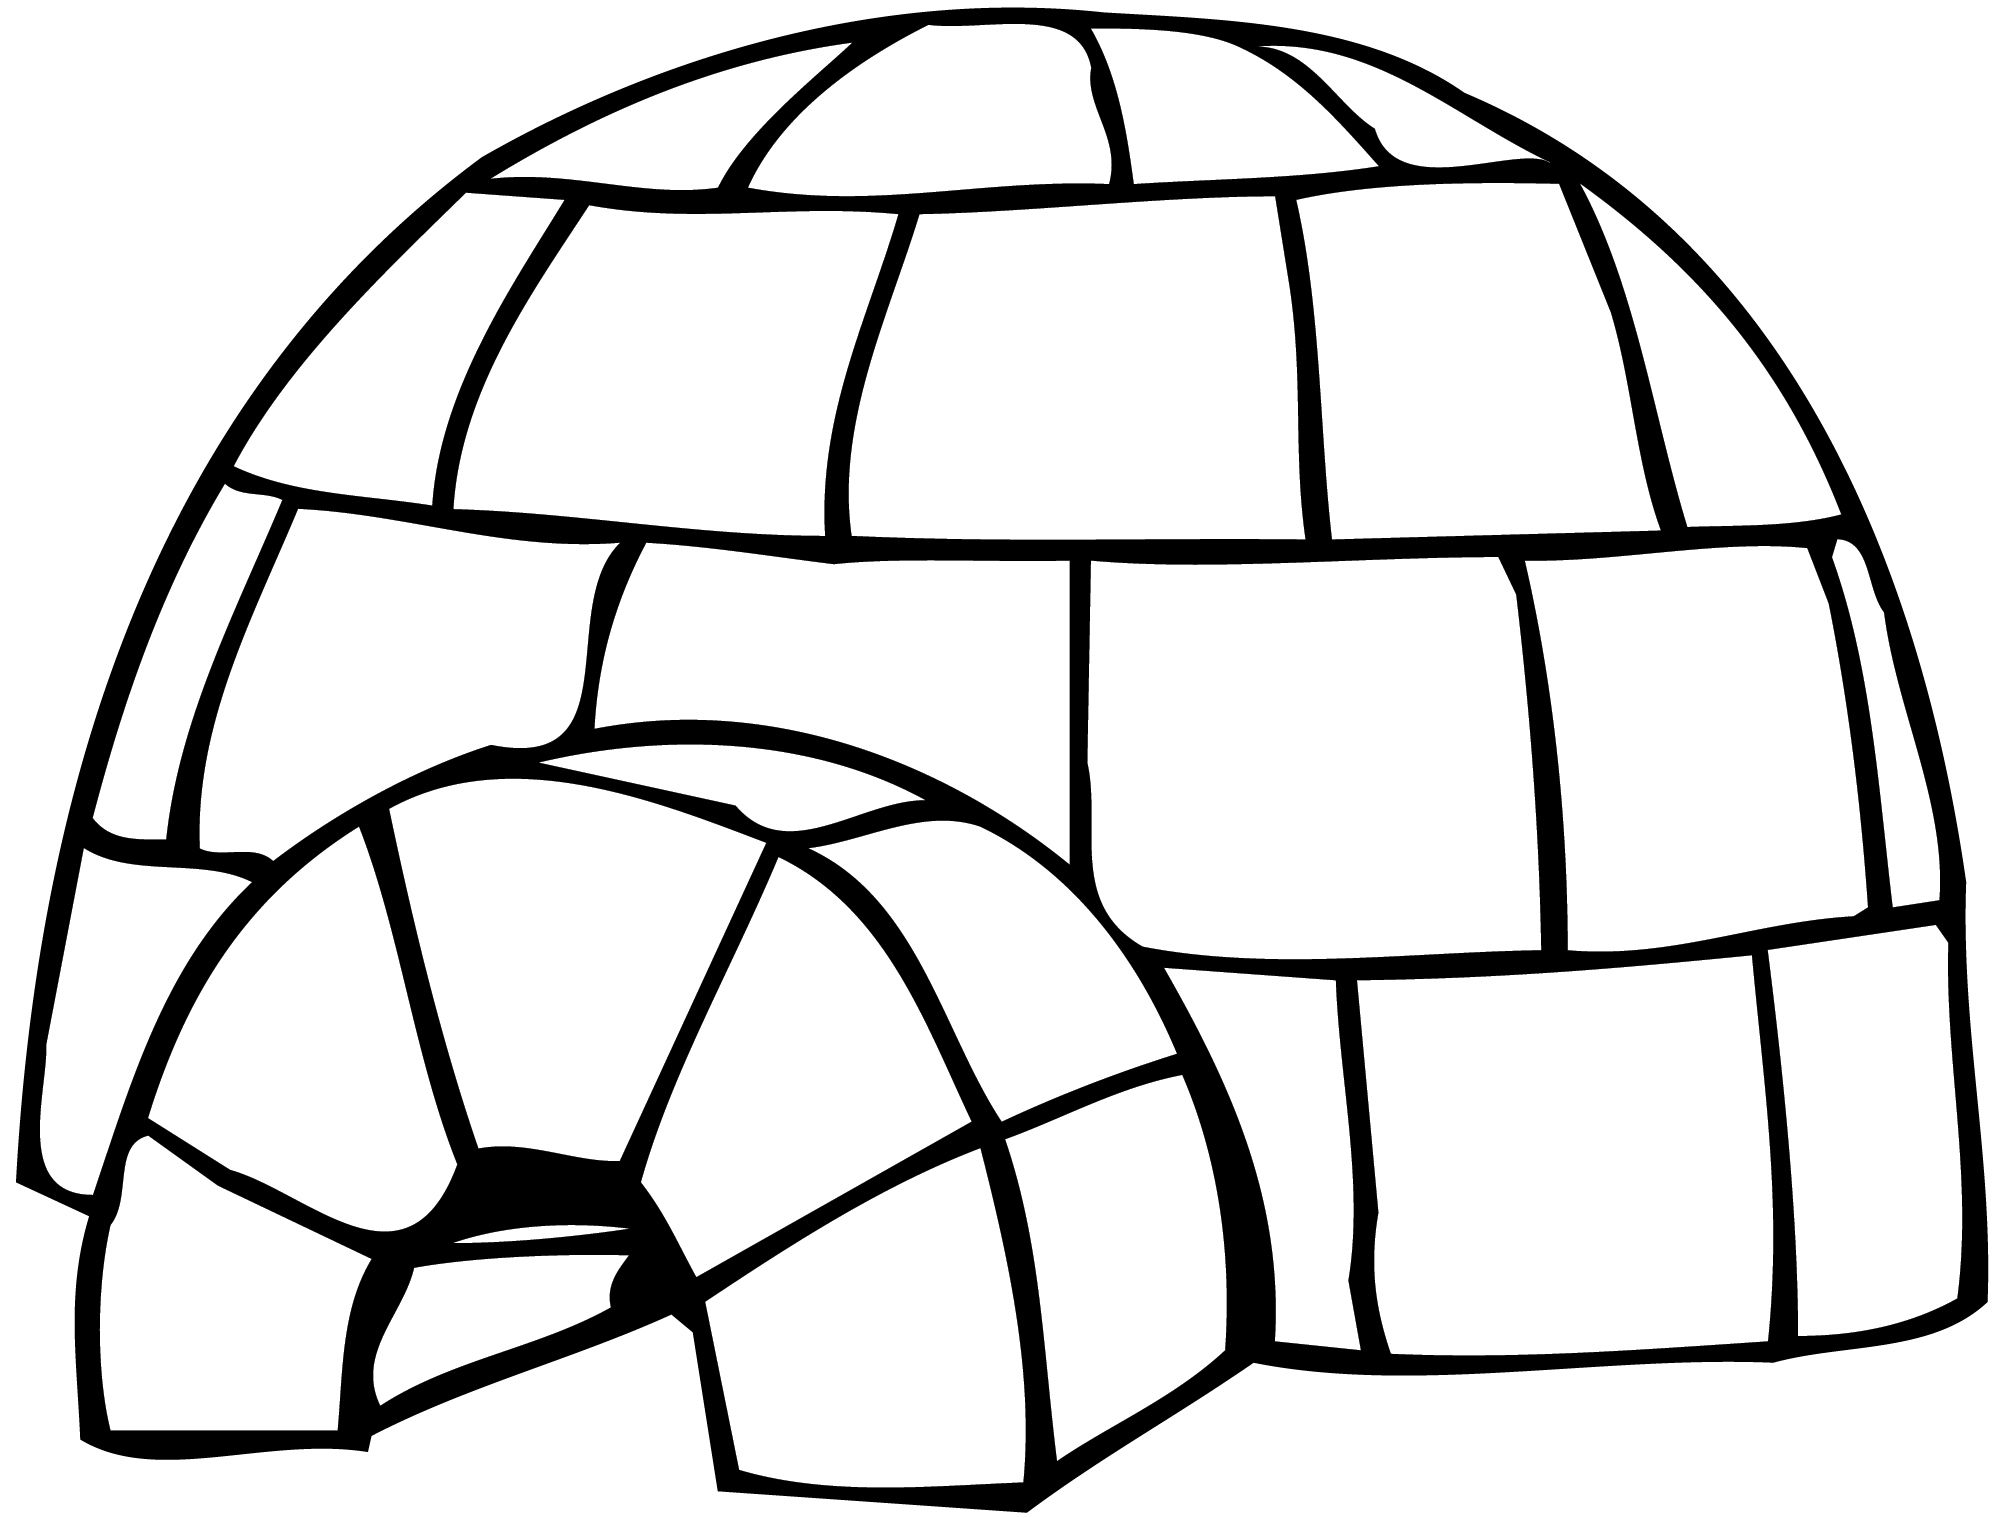 igloo pictures to color igloo coloring pages coloring pages to download and print pictures igloo color to